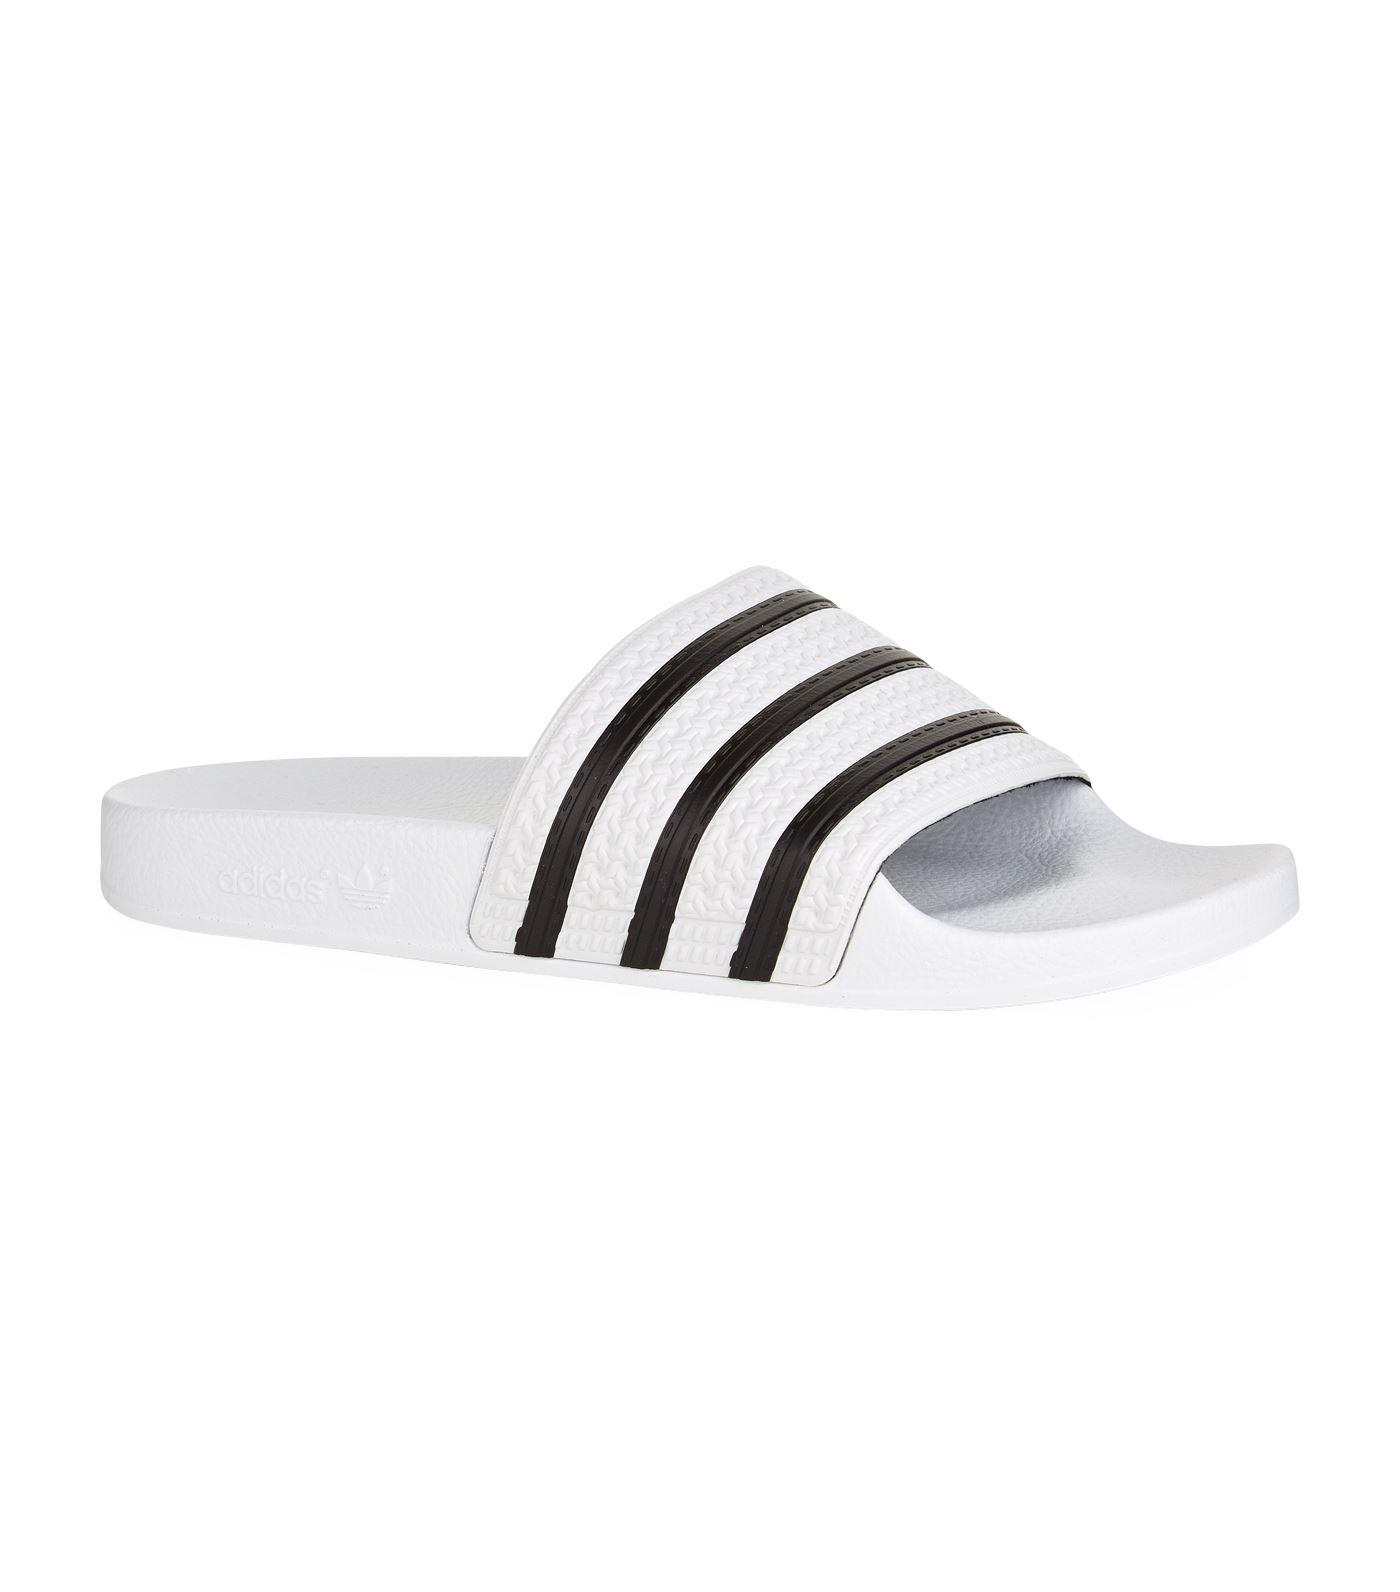 37f357c655f27 Lyst - adidas Originals Sandals in White for Men - Save ...